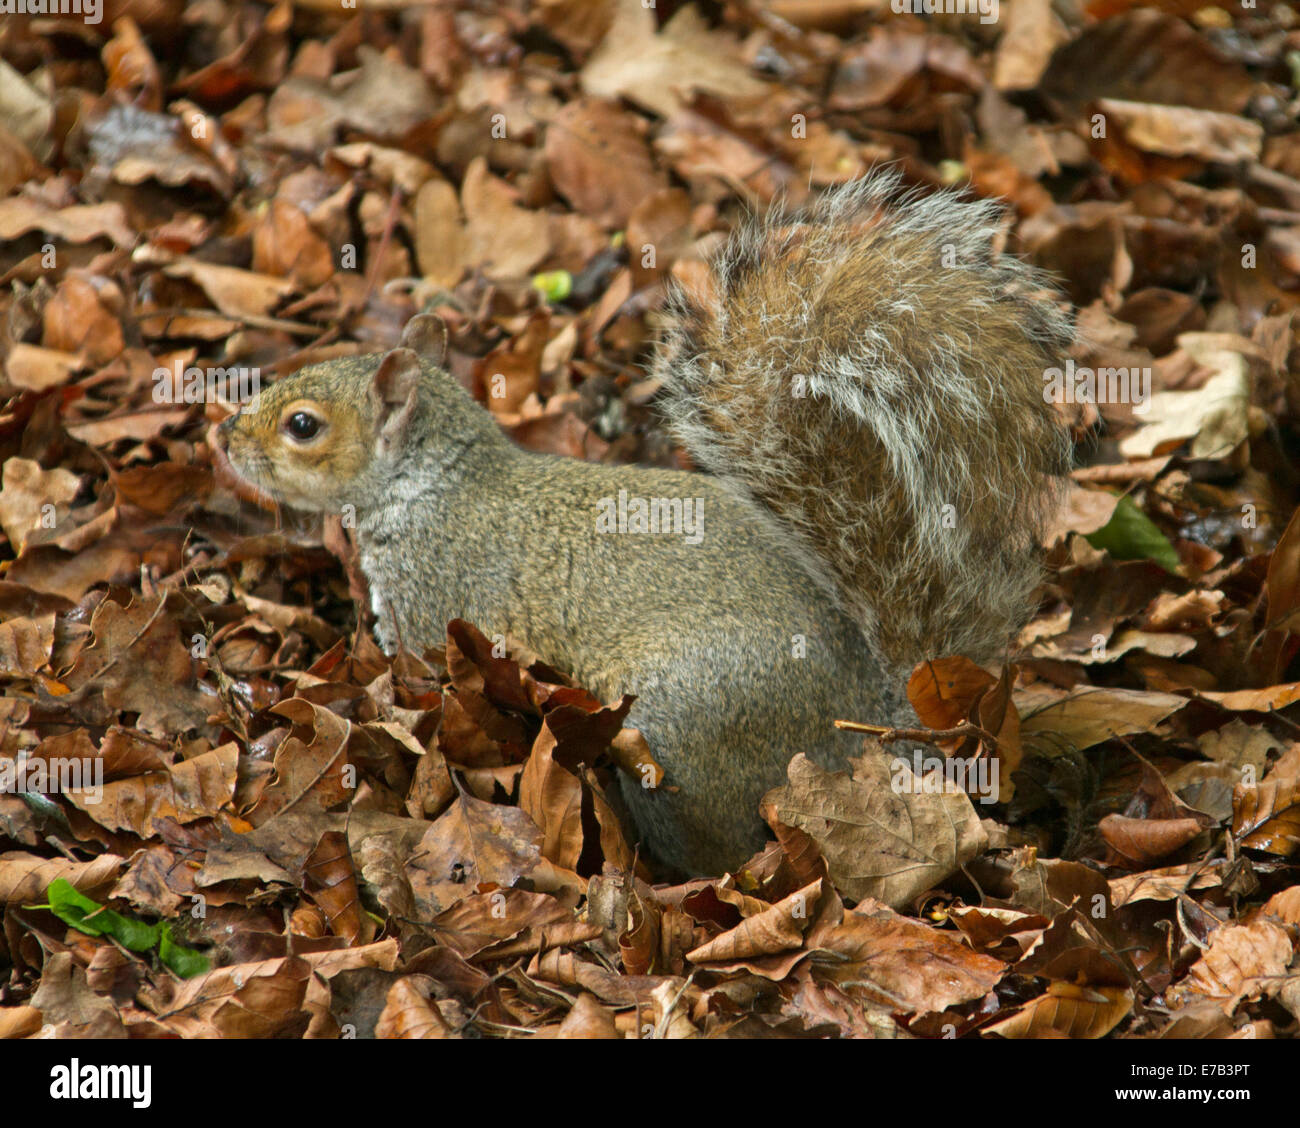 Eastern grey squirrel, Sciurus carolinensis, an introduced species, scampering among fallen autumn leaves in English - Stock Image